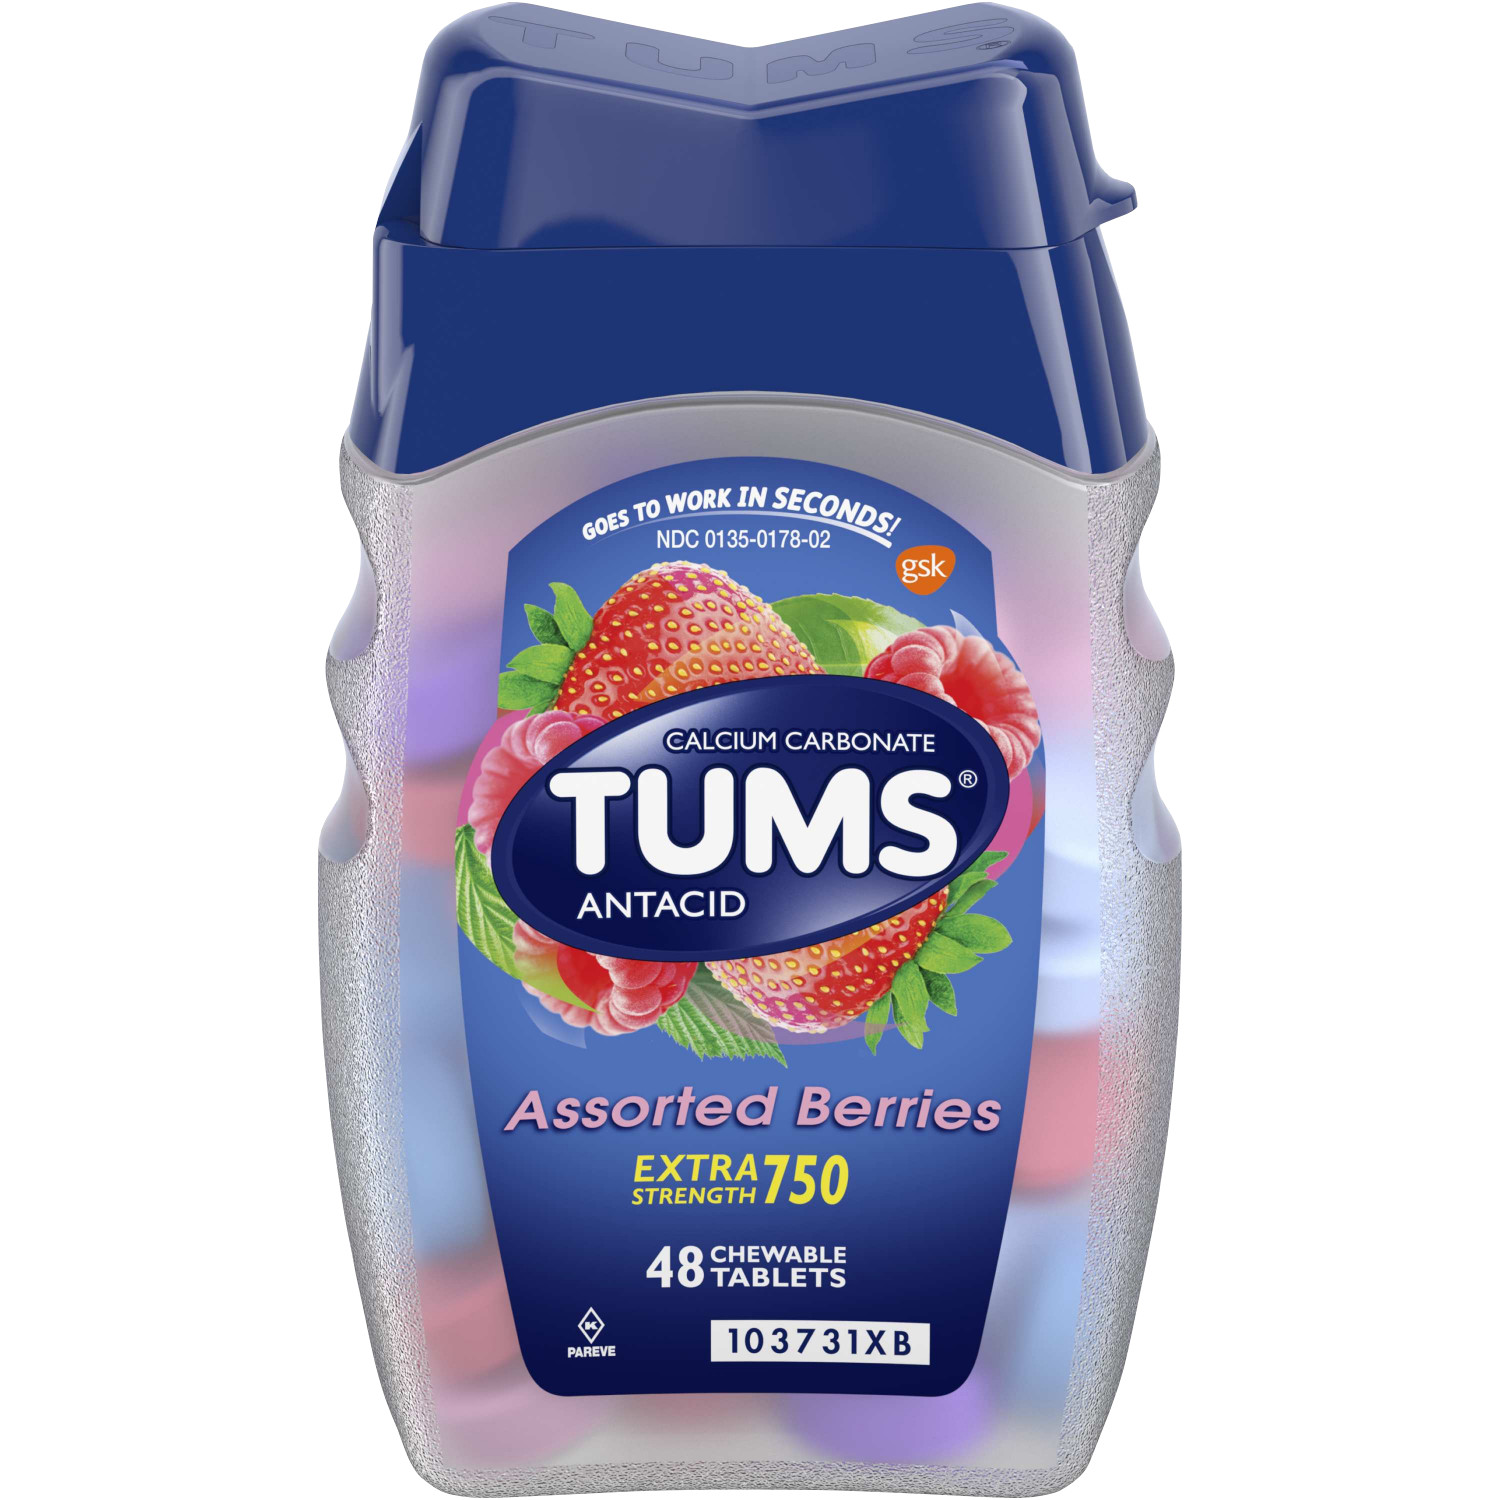 TUMS Antacid Chewable Tablets for Heartburn Relief, Extra Strength, Assorted Berries, 48 Tablets